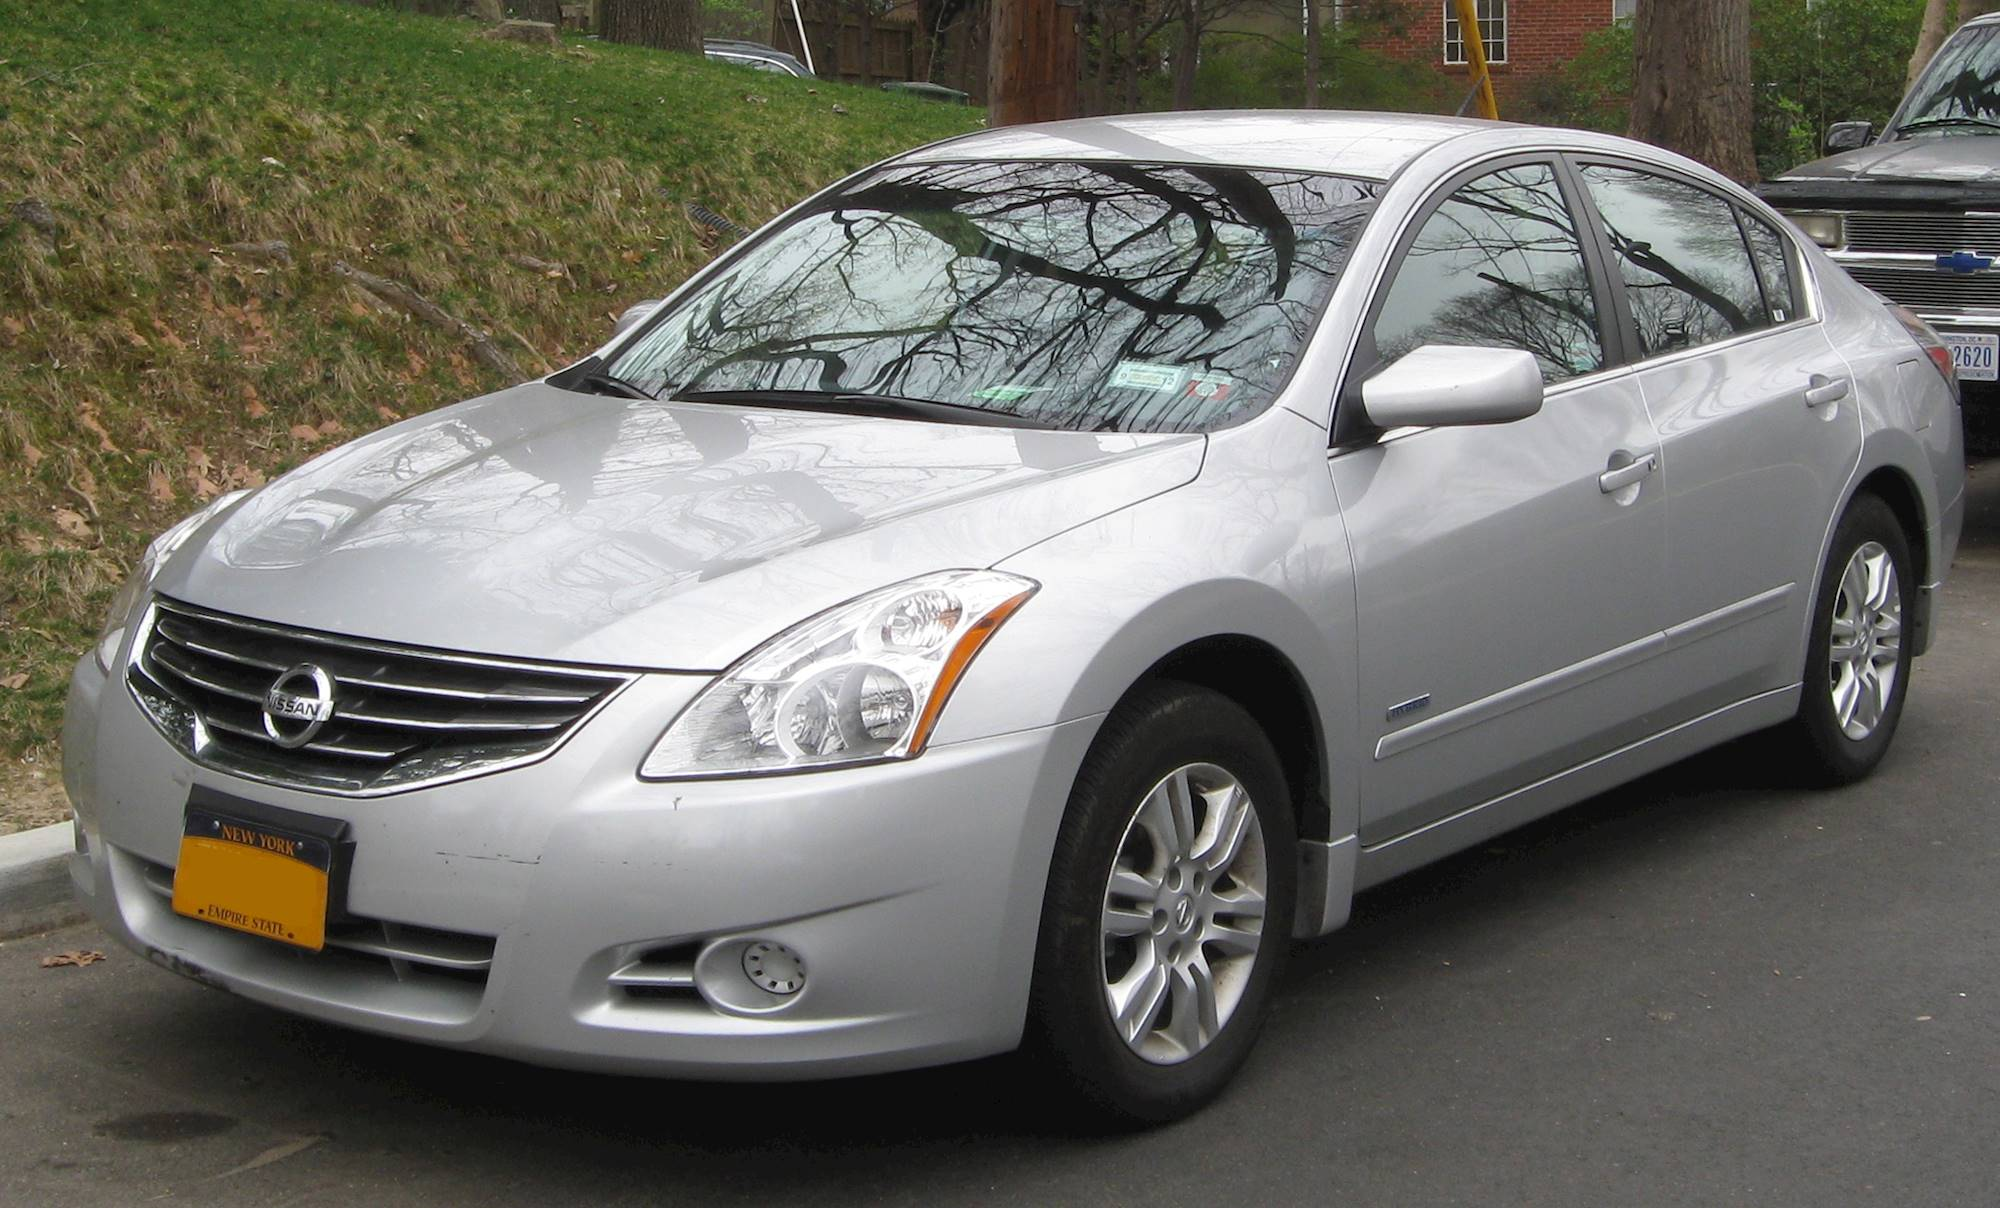 Used 2007 Nissan Altima 2.5 Hybrid at City Cars Warehouse INC  Nissan Altima Hybrid